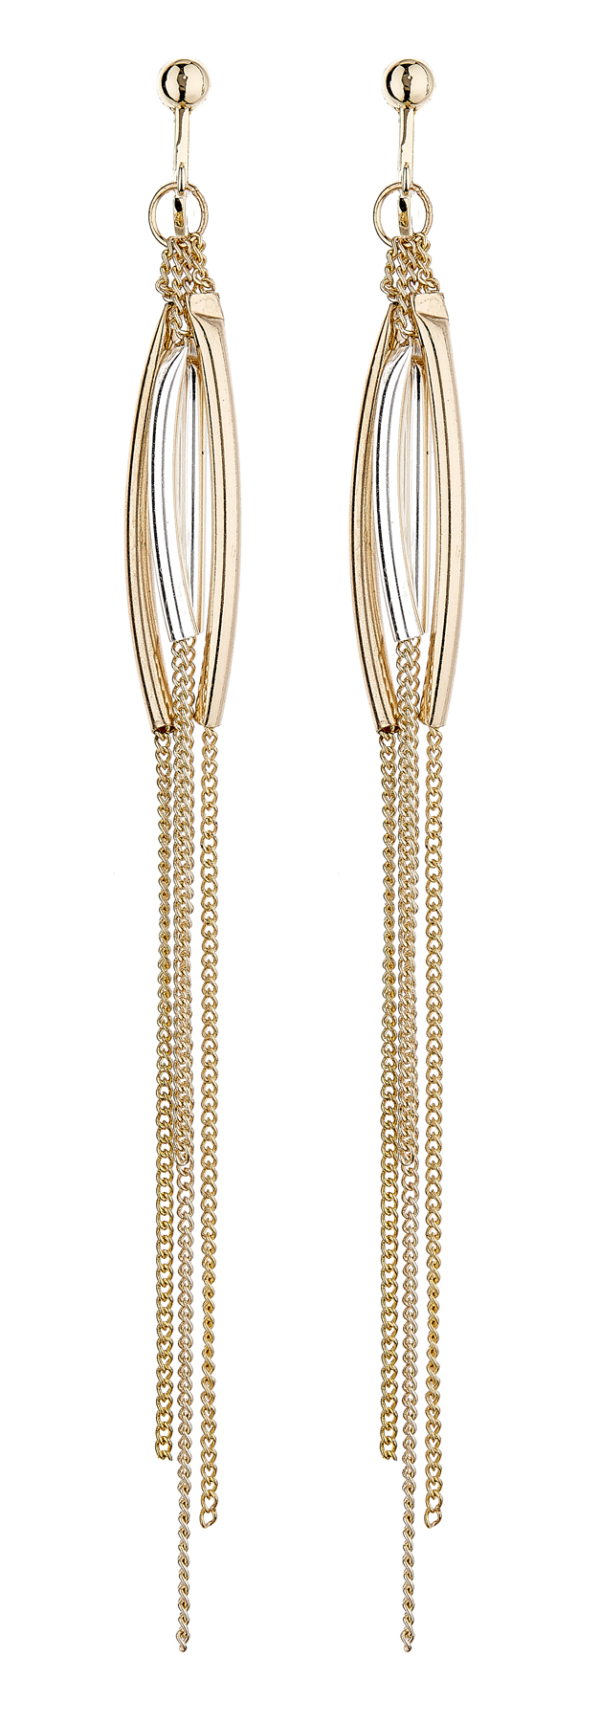 Clip On Earrings - Darcie - gold dangle earring with long chains